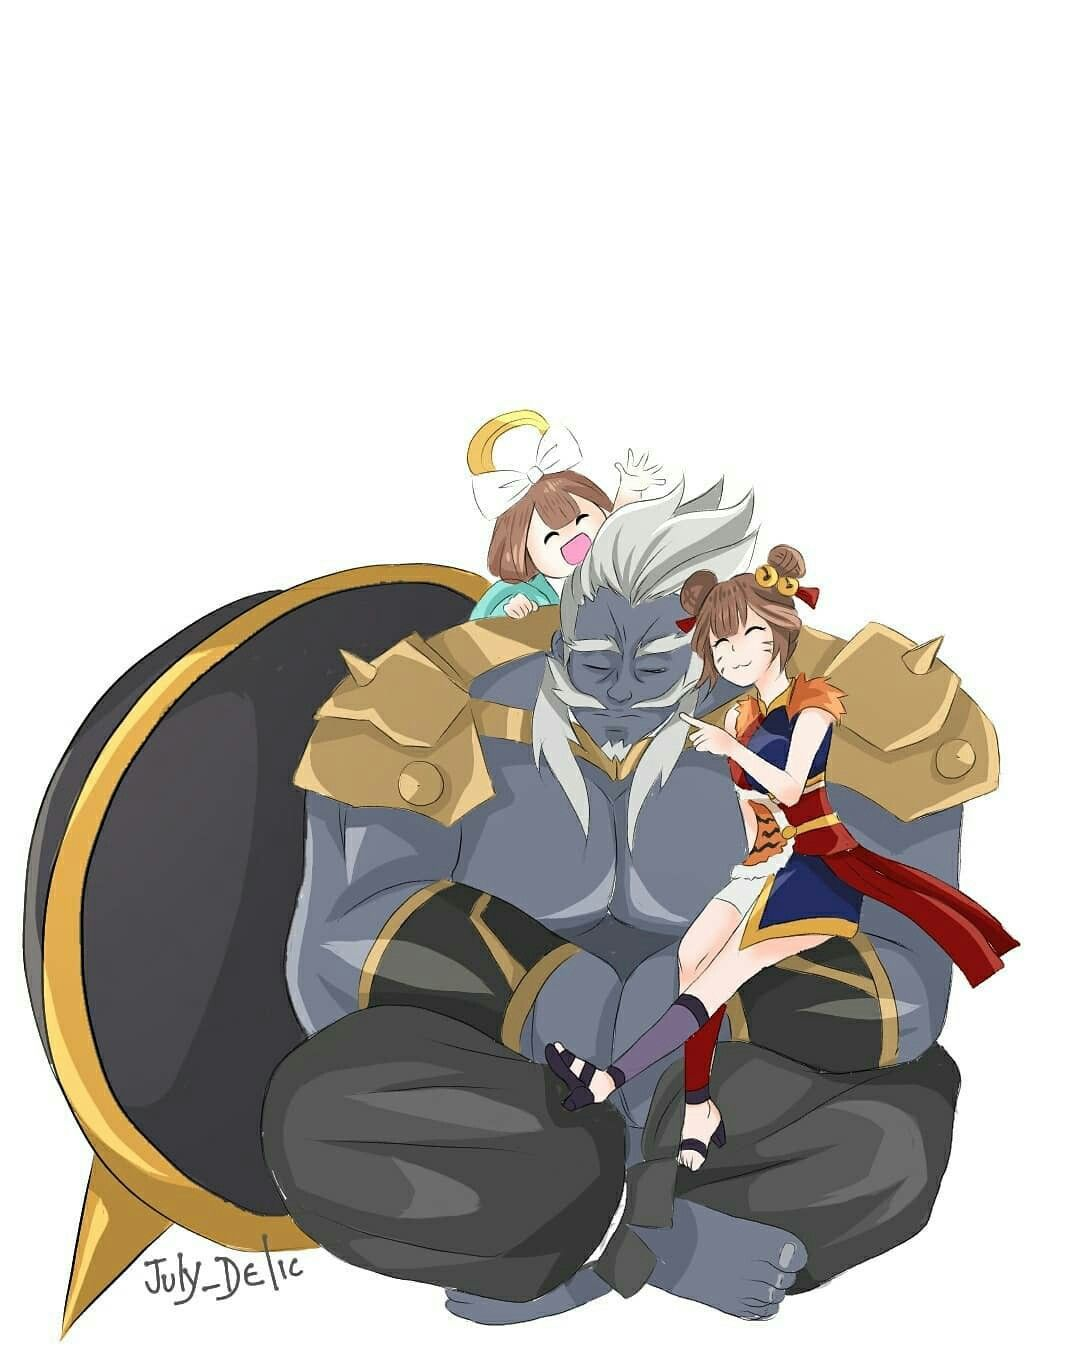 Chang E Baxia And Wanwan Mlbb Mobile Legends In 2020 Mobile Legends Anime Scenery Anime